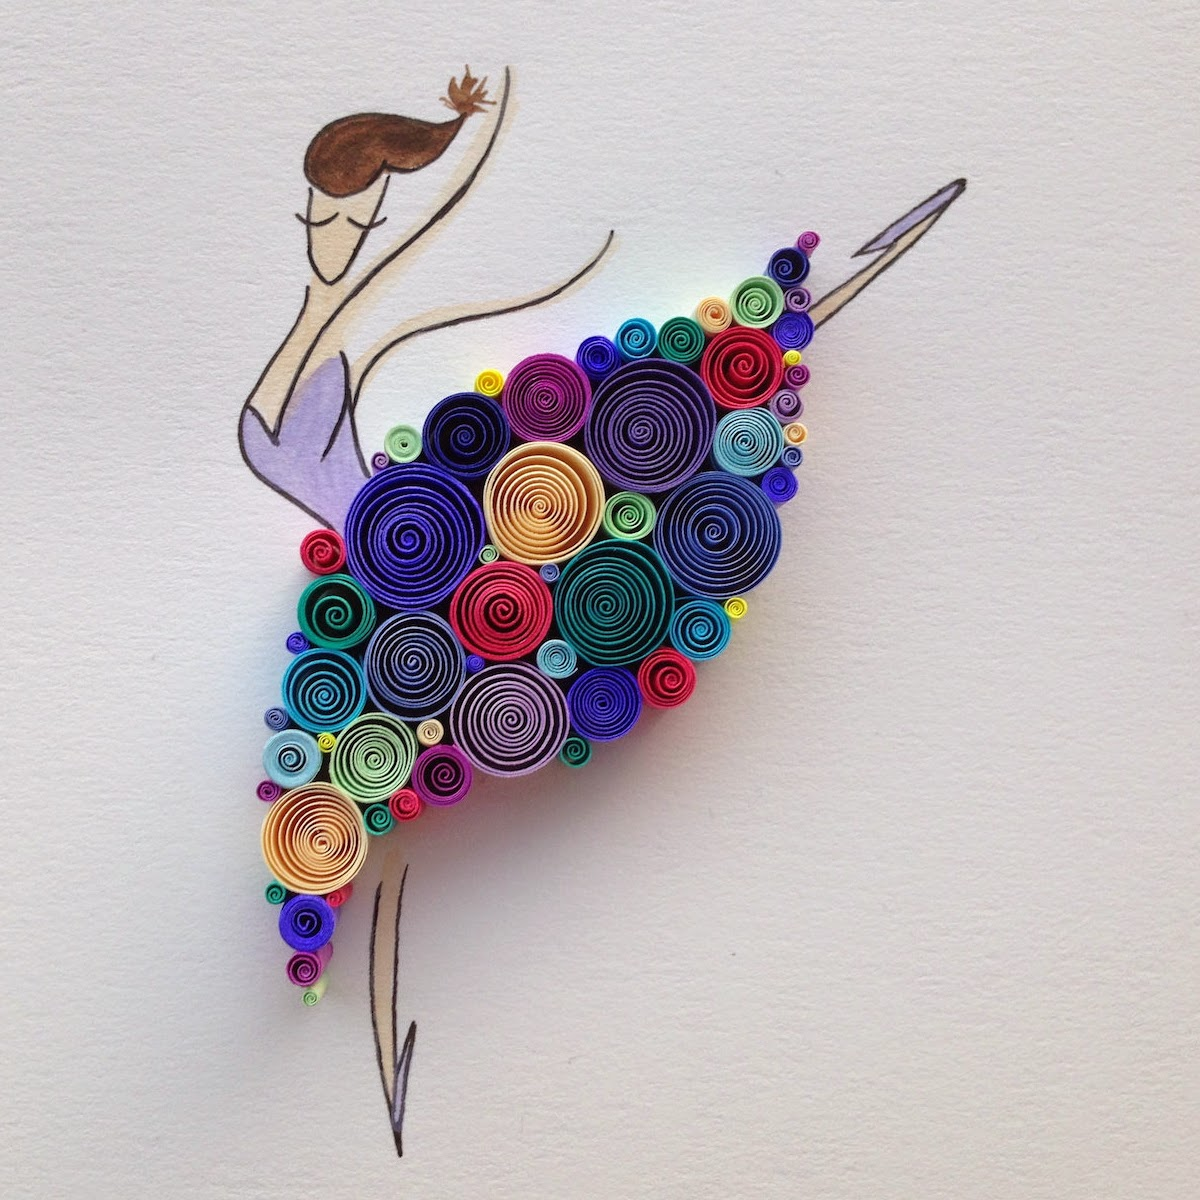 09-Dancing-Queen-Sena-Runa-Drawing-and-Quilling-a-match-made-in-Heaven-www-designstack-co